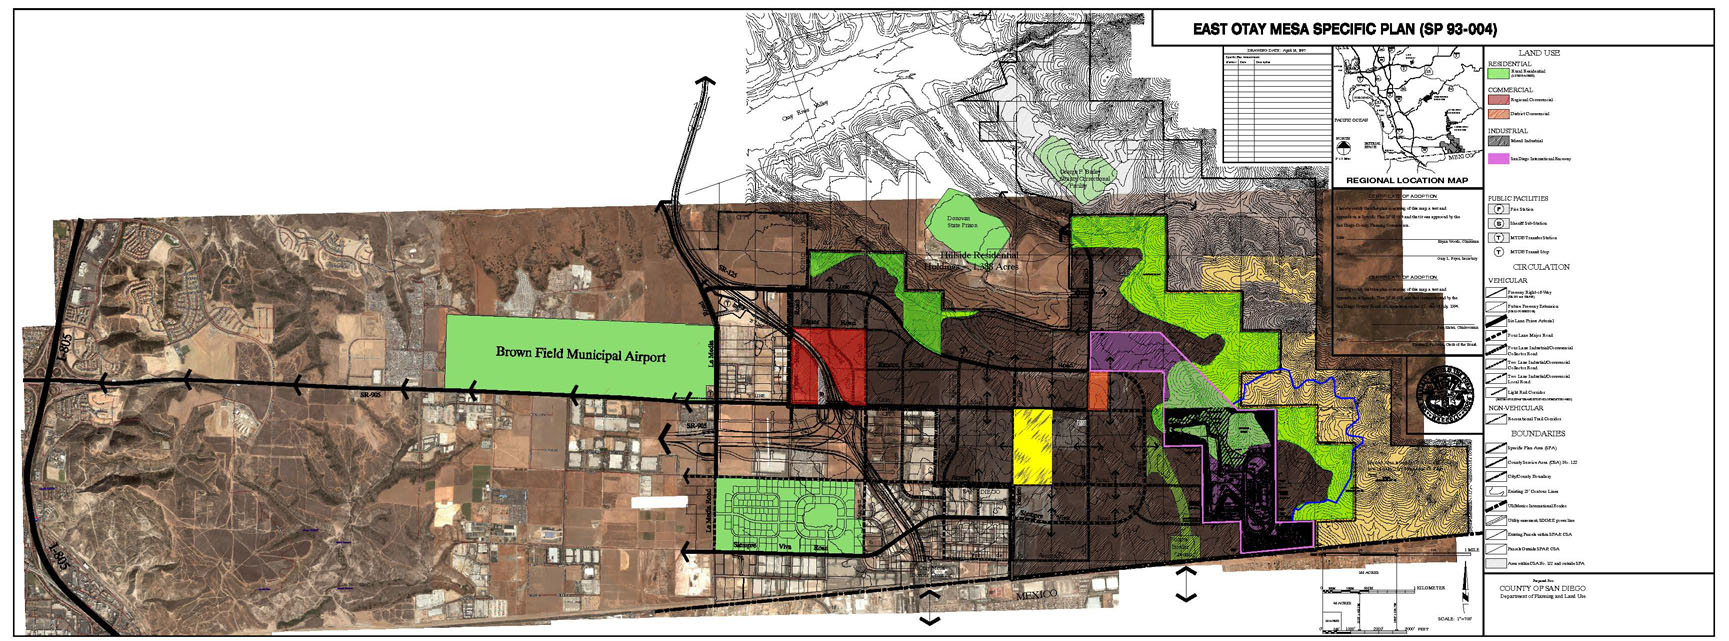 East Otay Mesa Specific Plan